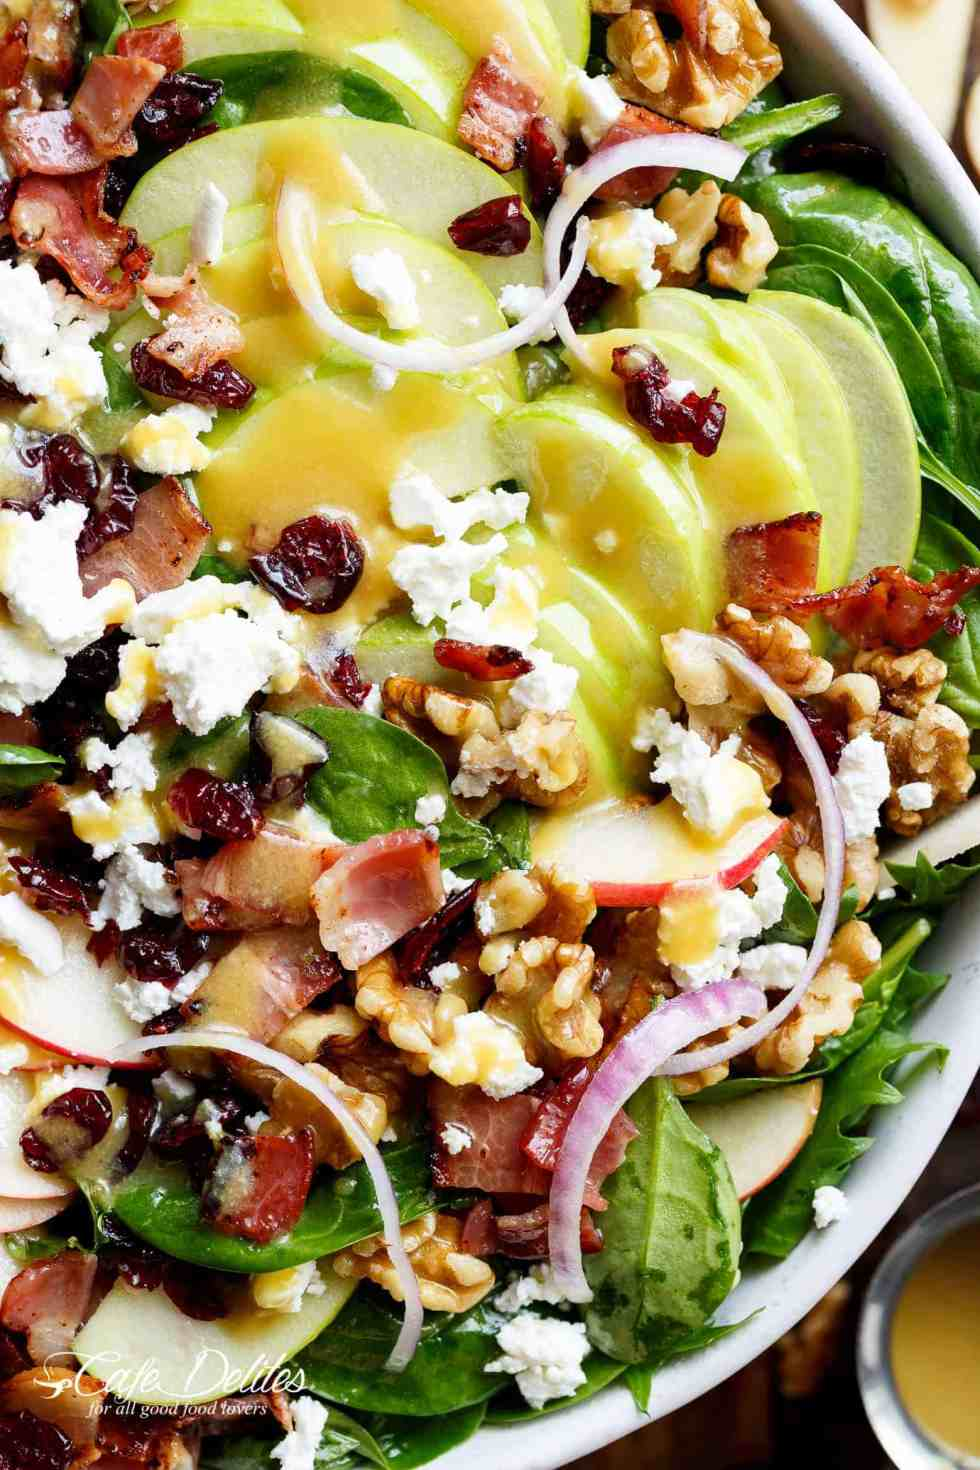 Honey Dijon Apple Bacon Cranberry Salad screams FALL! Cranberries, Spinach, Walnuts And BACON! All drizzled with the most perfect Honey Dijon Dressing! | Cafe Delites